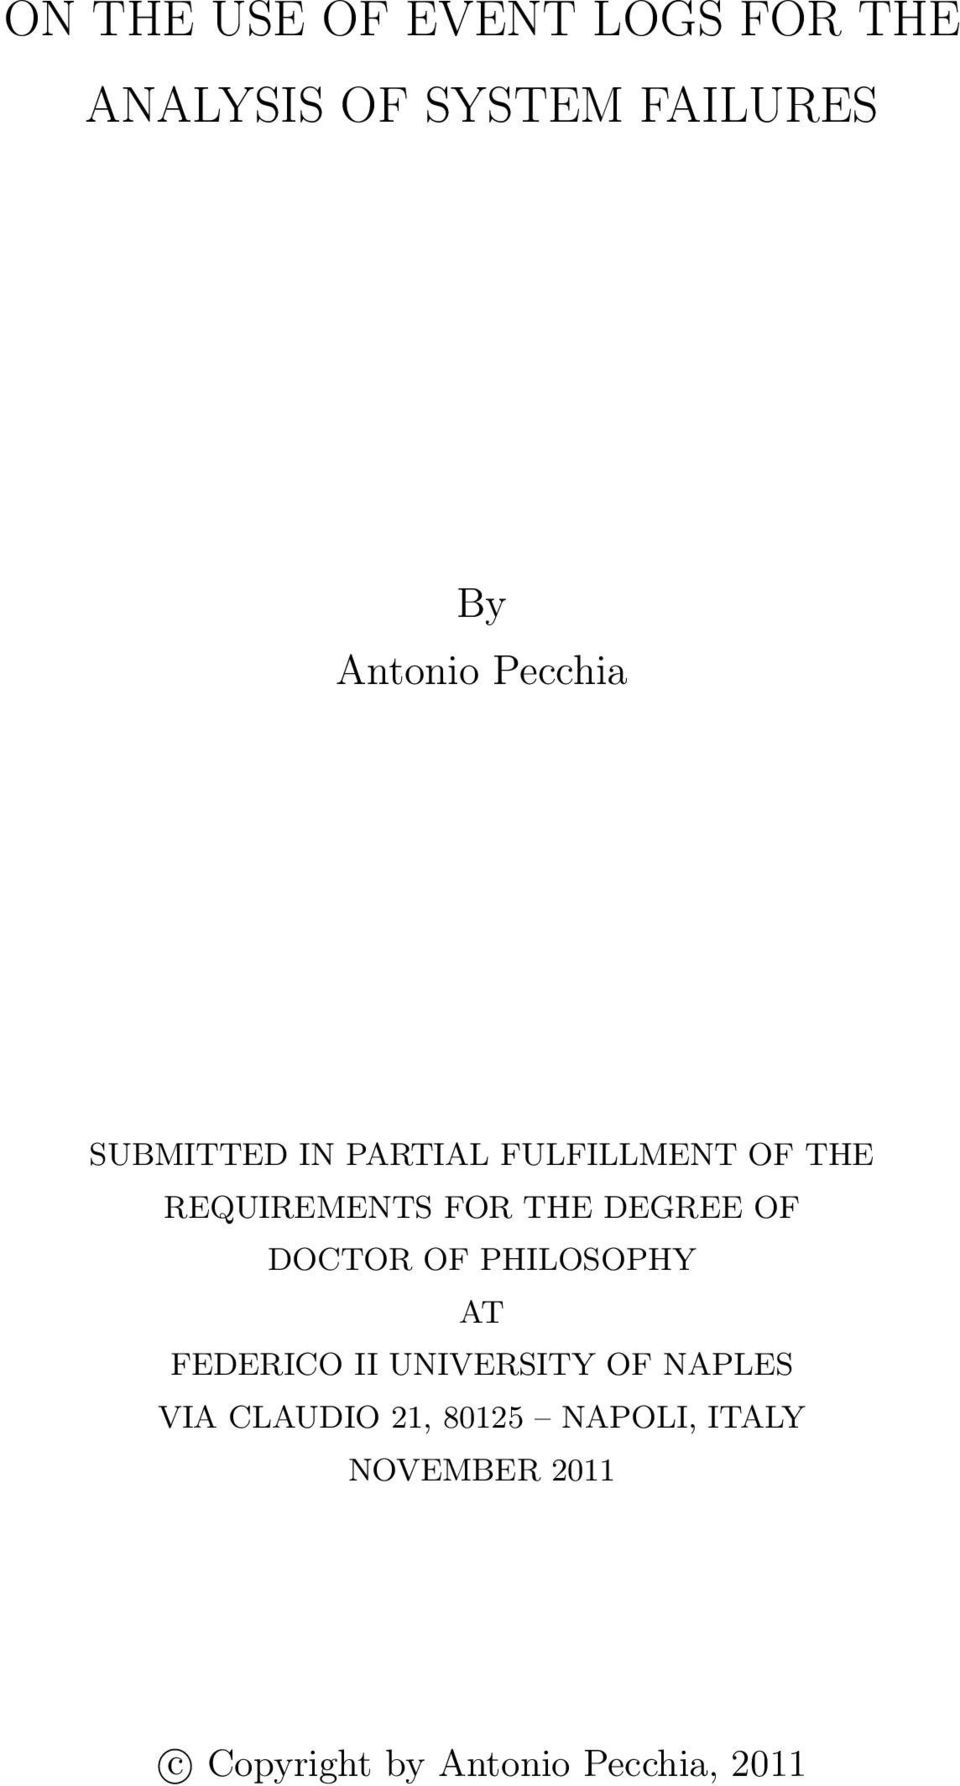 DEGREE OF DOCTOR OF PHILOSOPHY AT FEDERICO II UNIVERSITY OF NAPLES VIA